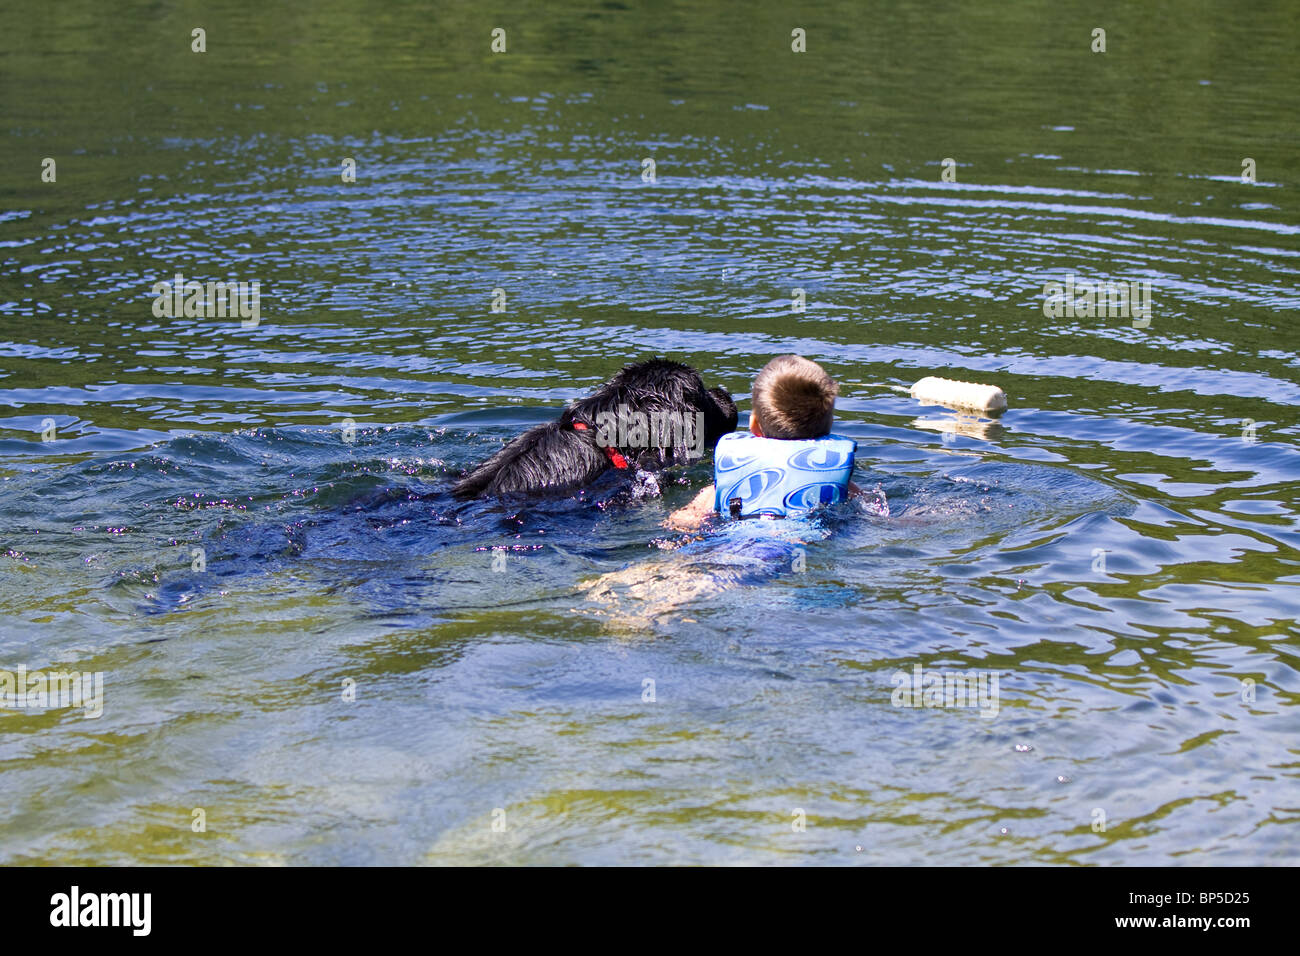 A child being pulled out of the water by a Newfoundland dog. - Stock Image